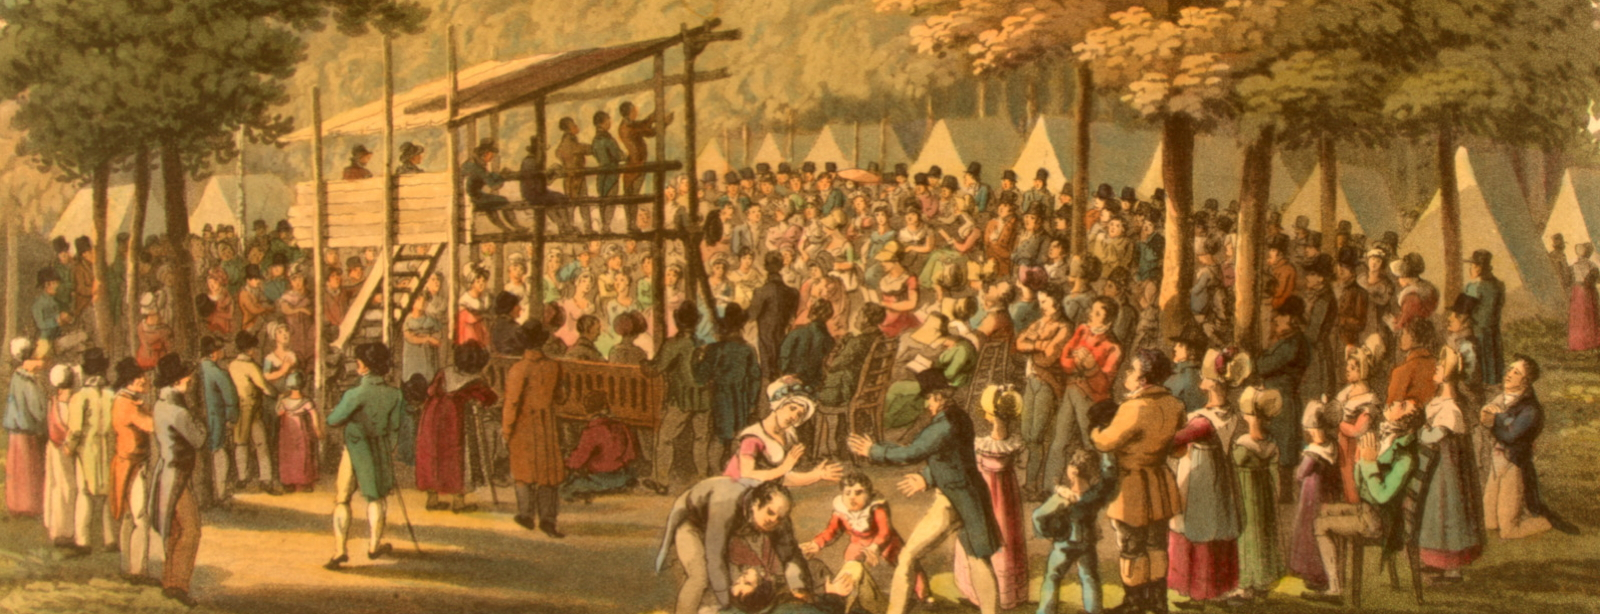 role of religion in colonial america